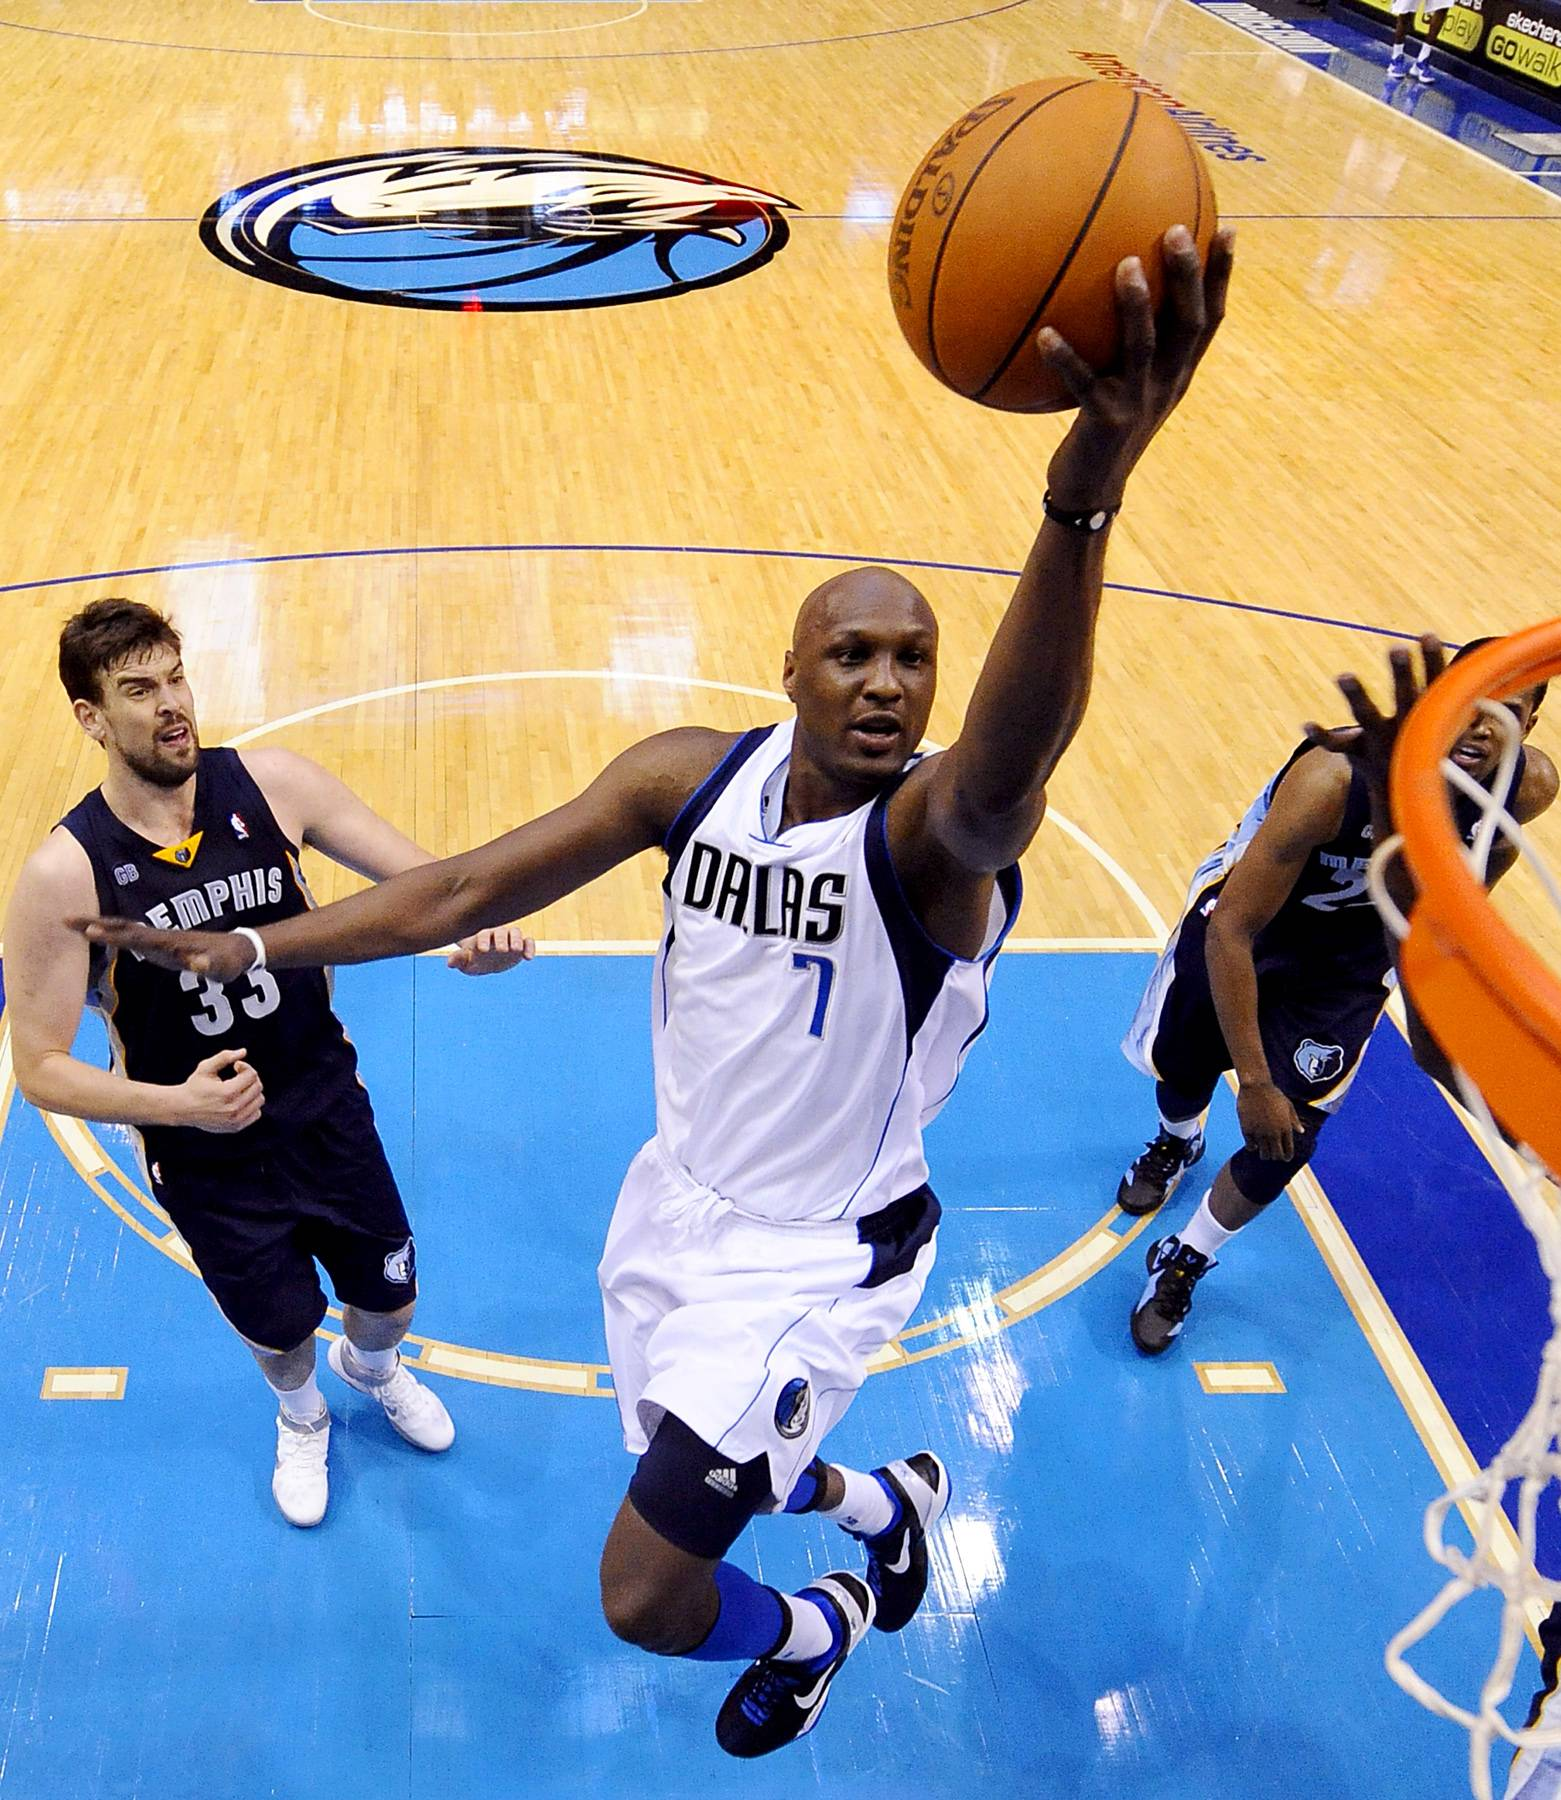 A Turn for the Worse - In a trade that he was unhappy with, Odom was acquired by the Dallas Mavericks in 2011. Still mourning his late cousin, Odom failed to perform well on the team. By April 2012, he and the Mavericks agreed to sever ties, and Odom was downgraded to the NBA Developmental League. He officially left the Mavericks two months later.(Photo: EPA/LARRY W. SMITH /LANDOV)